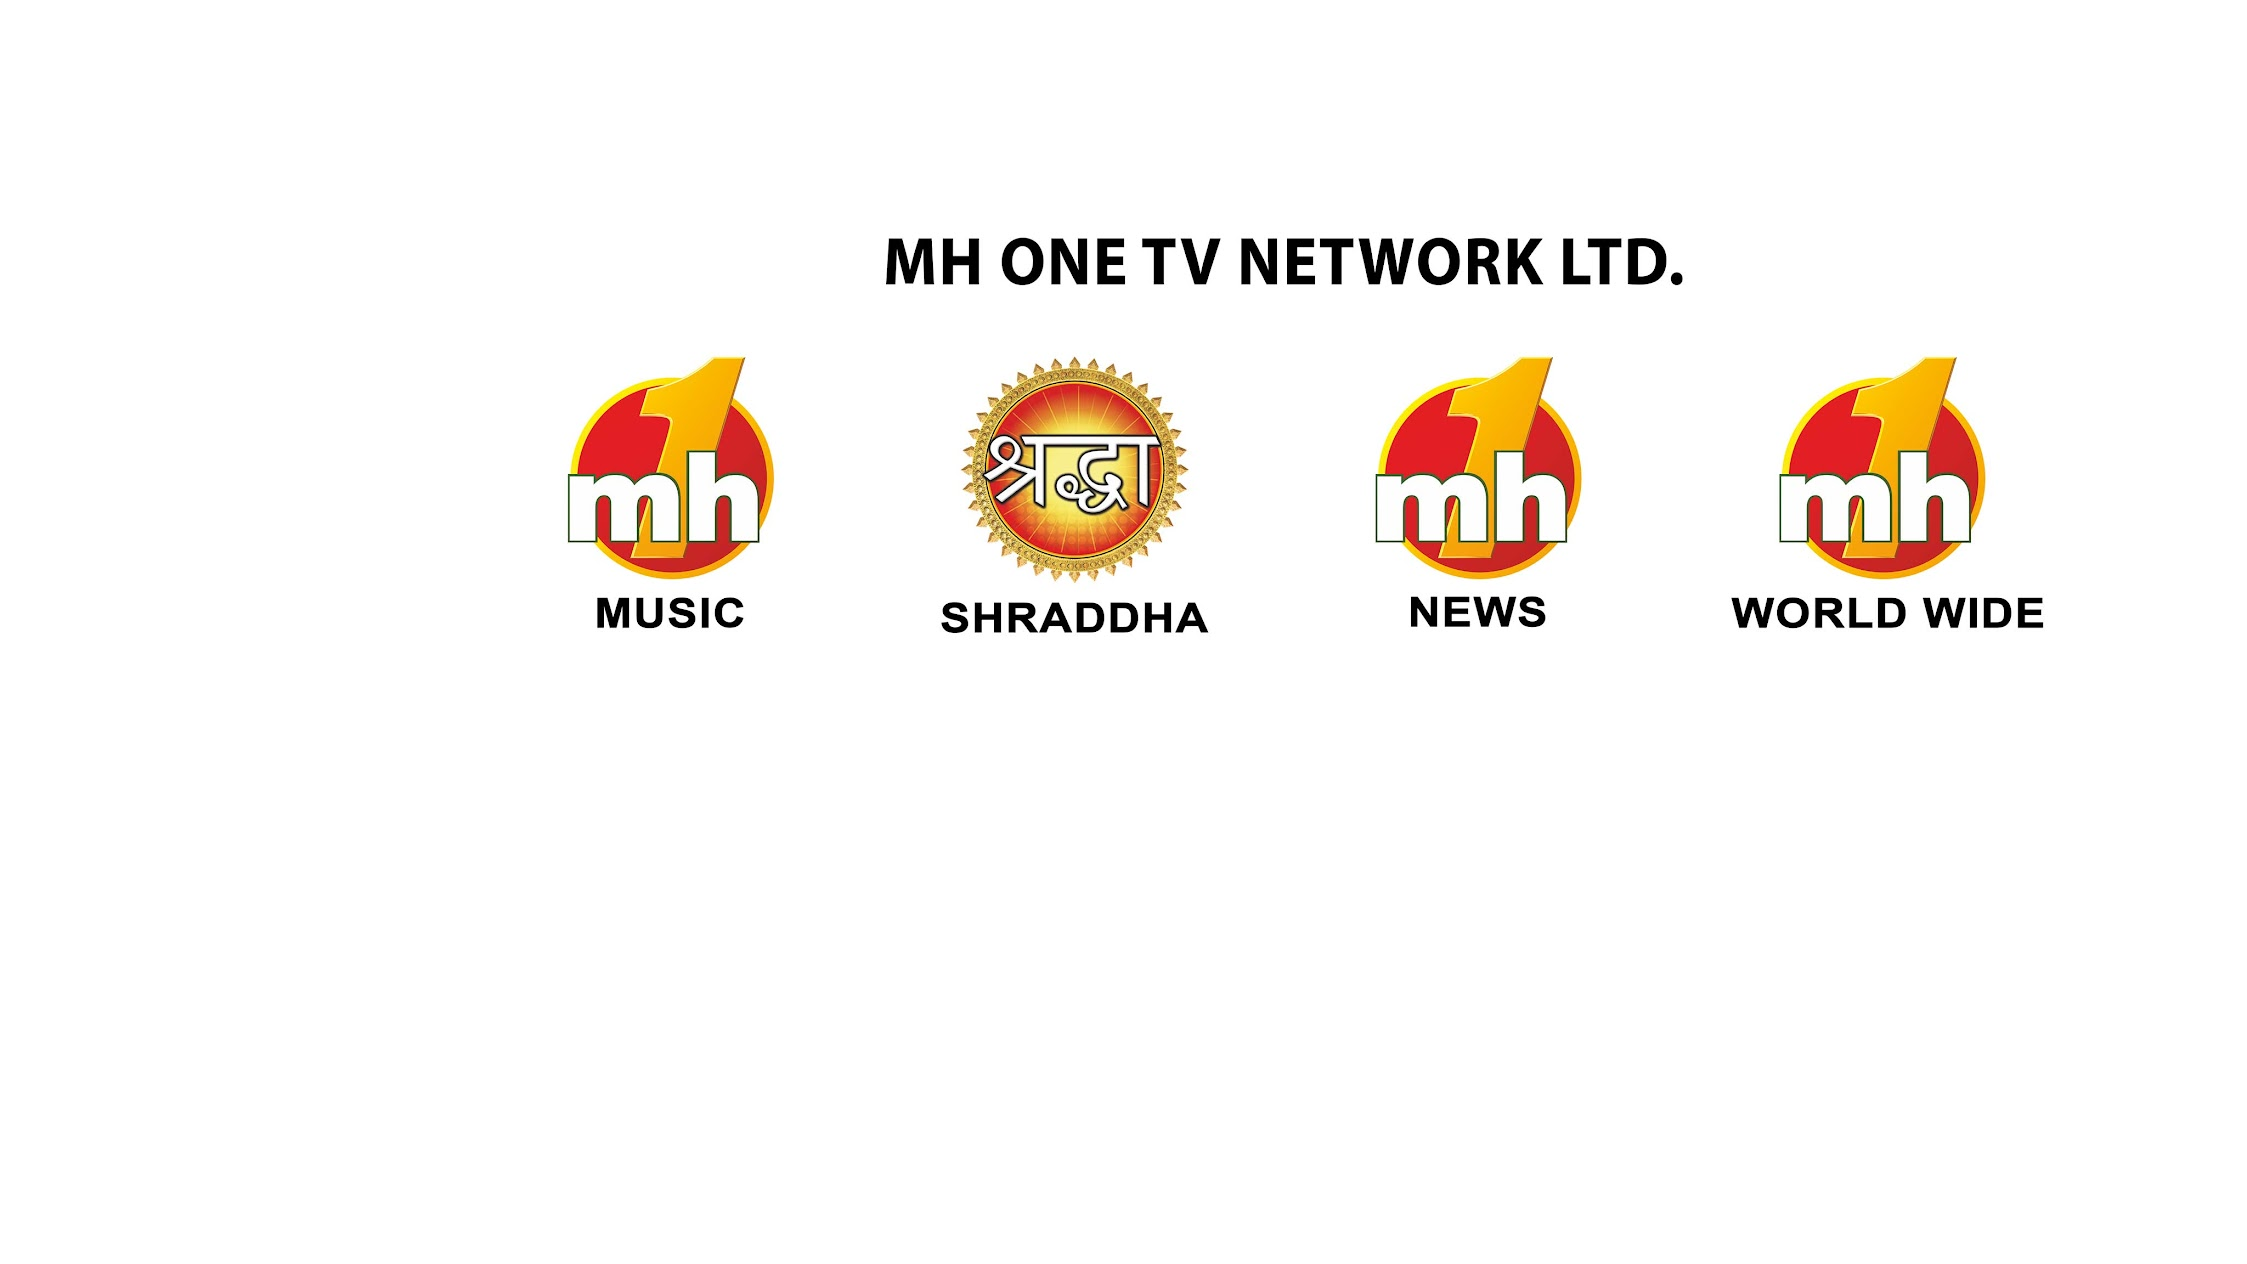 MH ONE TV NETWORK LIMITED